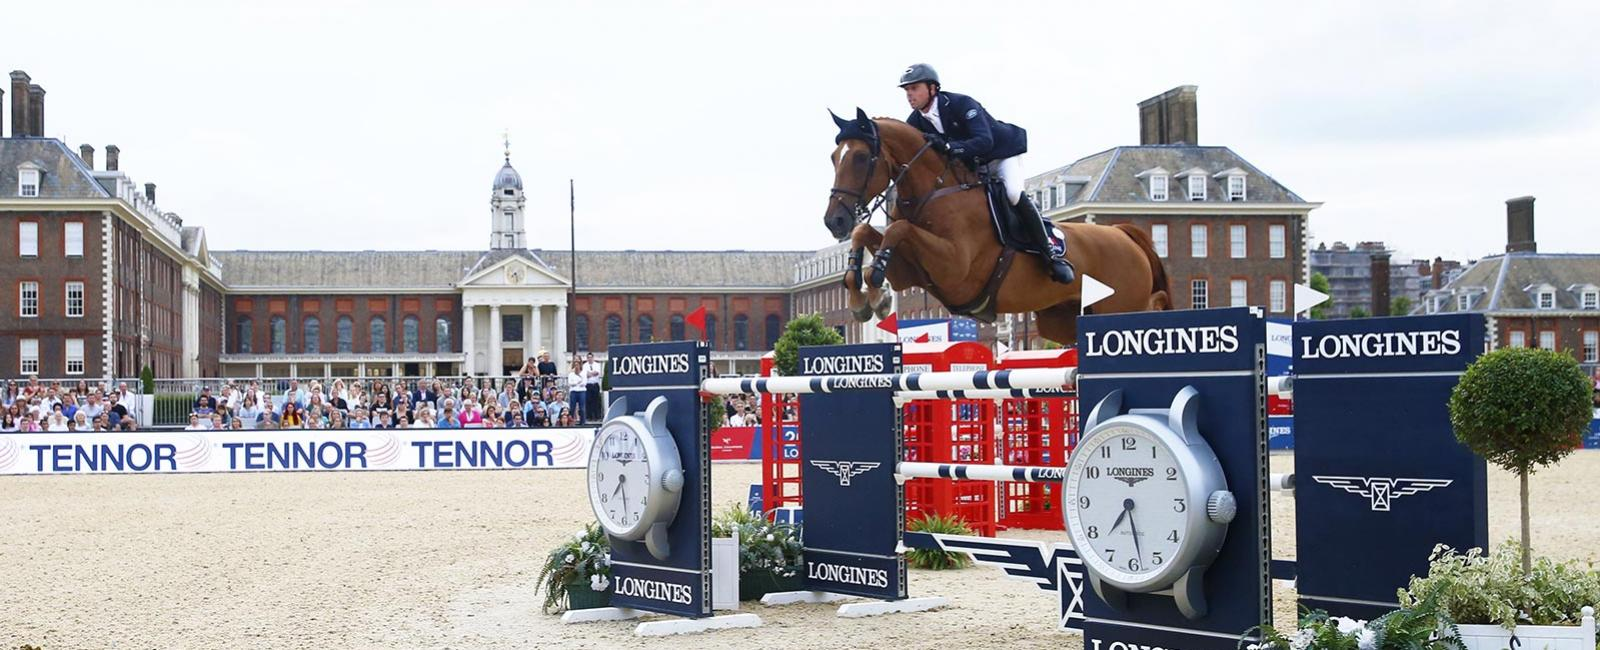 Longines Global Champions Tour of London; Jumping; 2019